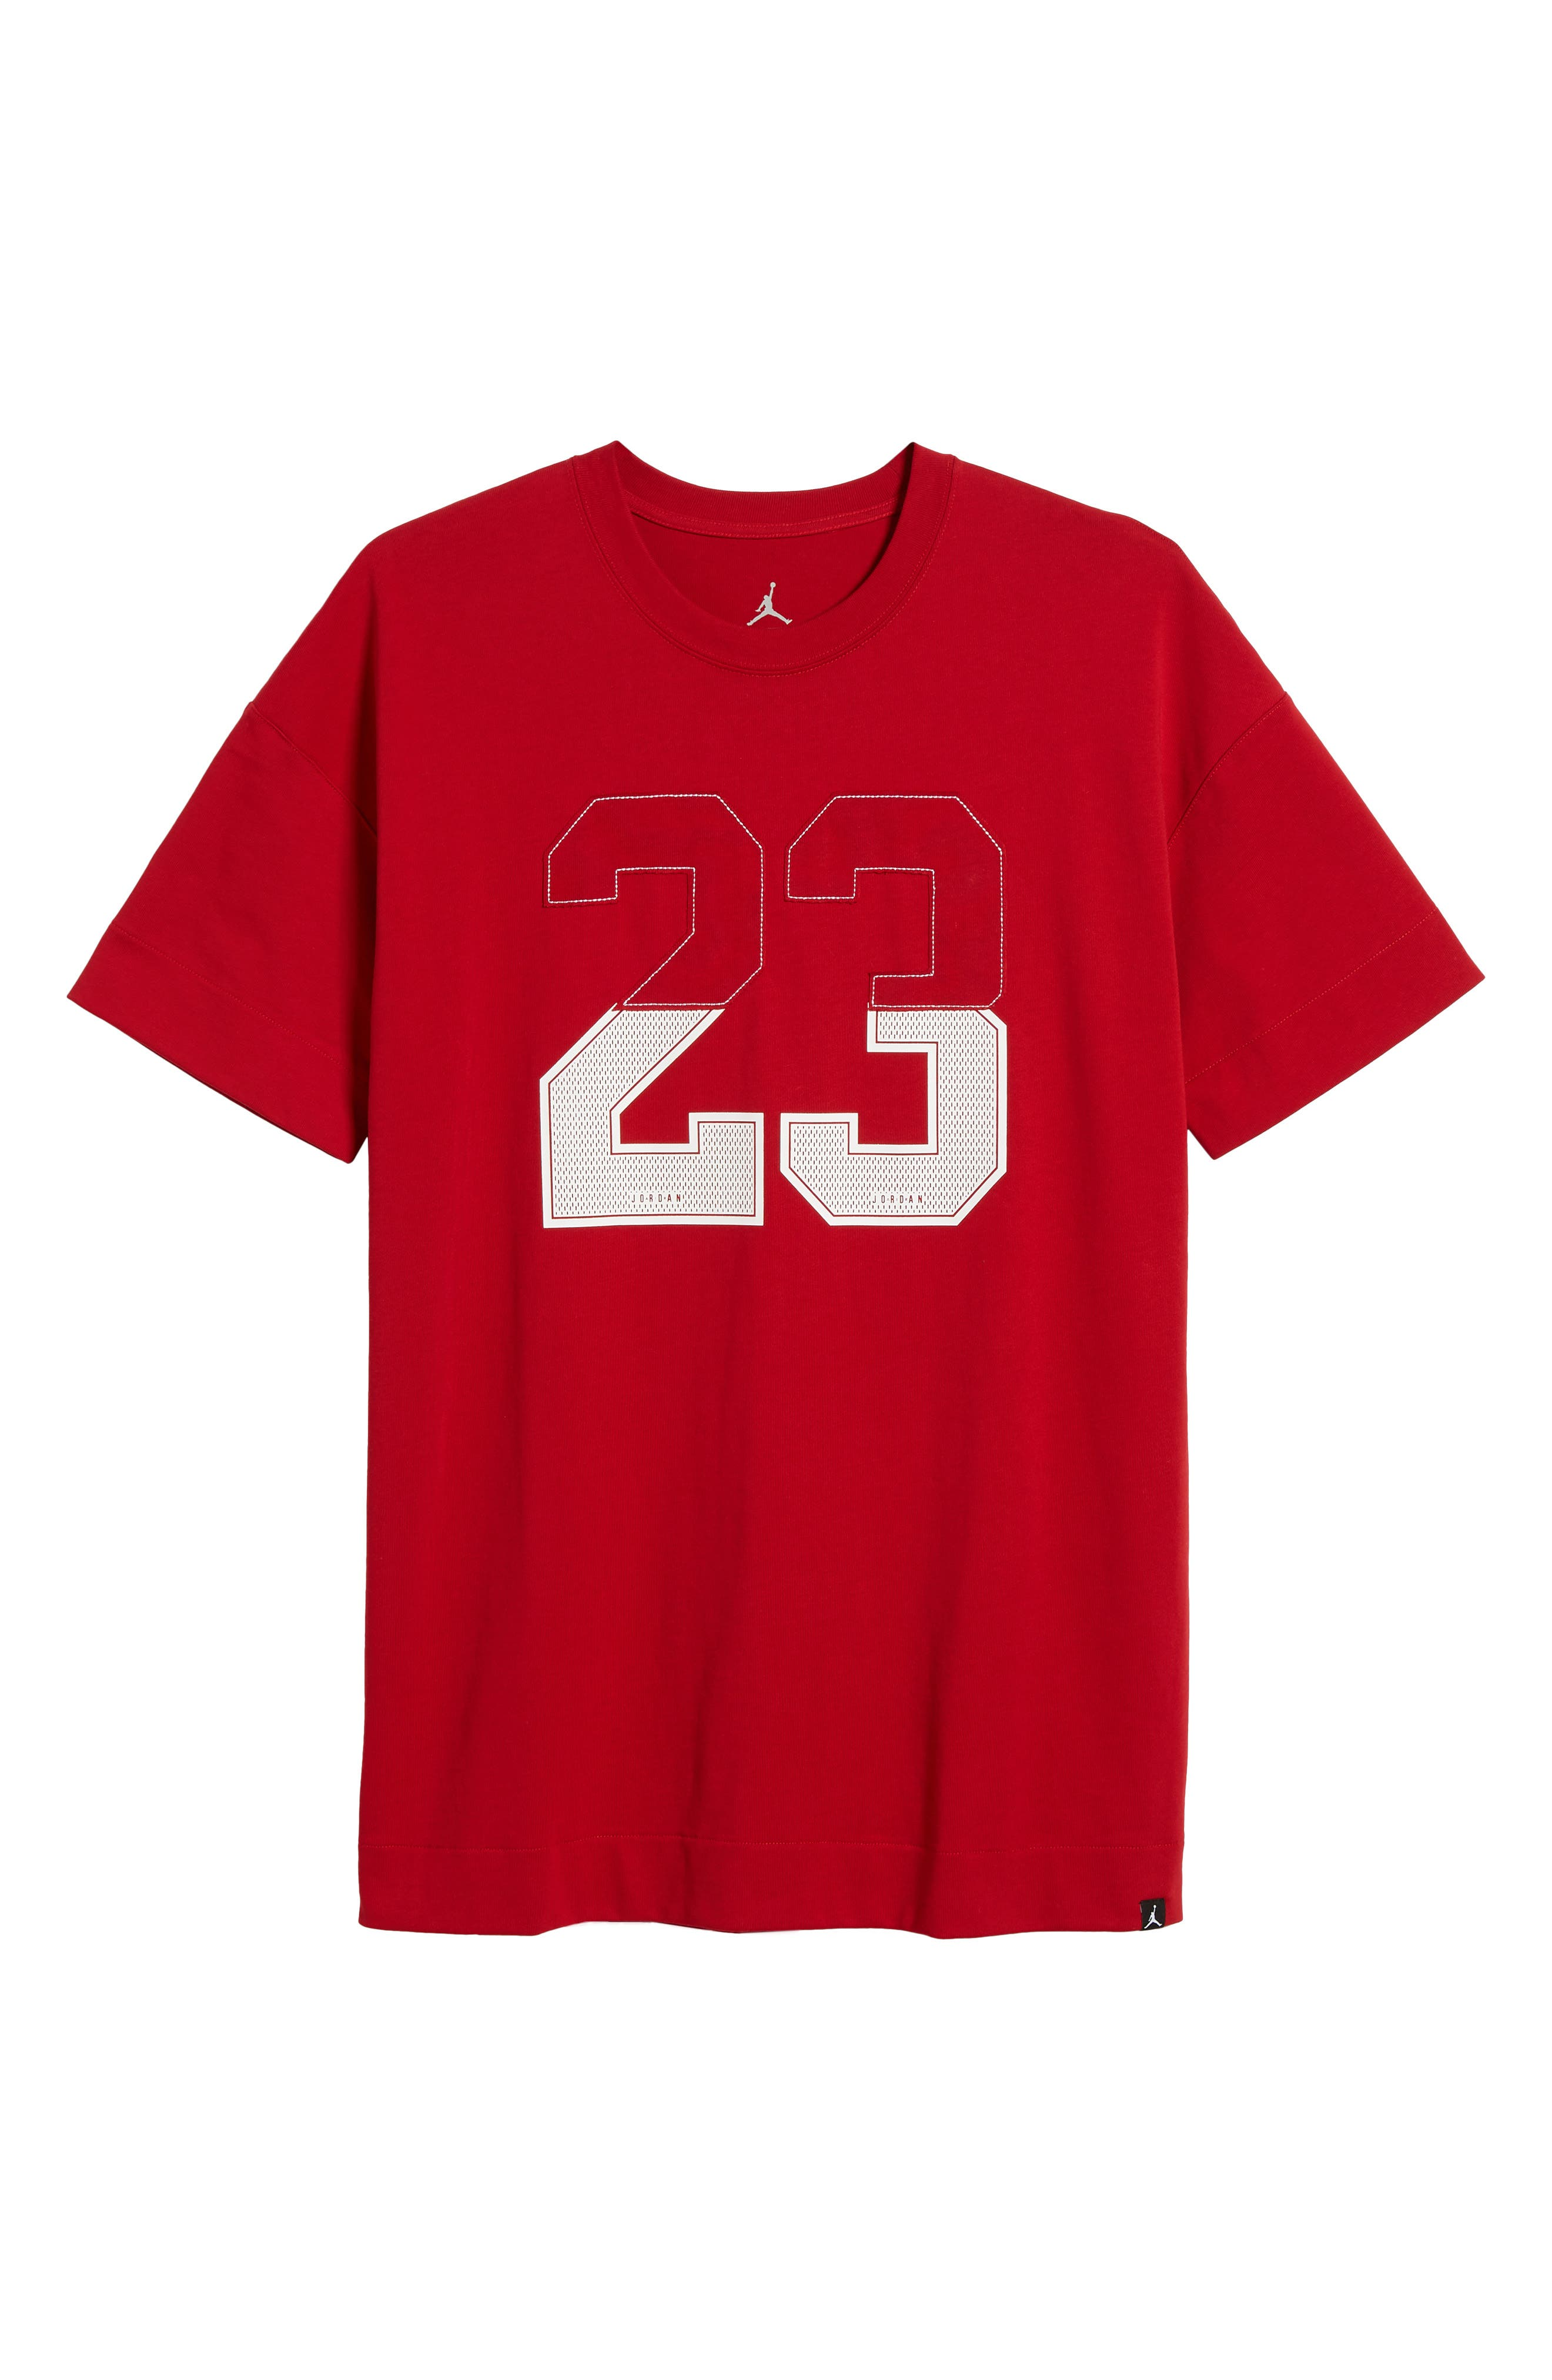 Nike Oversize 23 Graphic T-Shirt,                             Alternate thumbnail 6, color,                             GYM RED/ WHITE